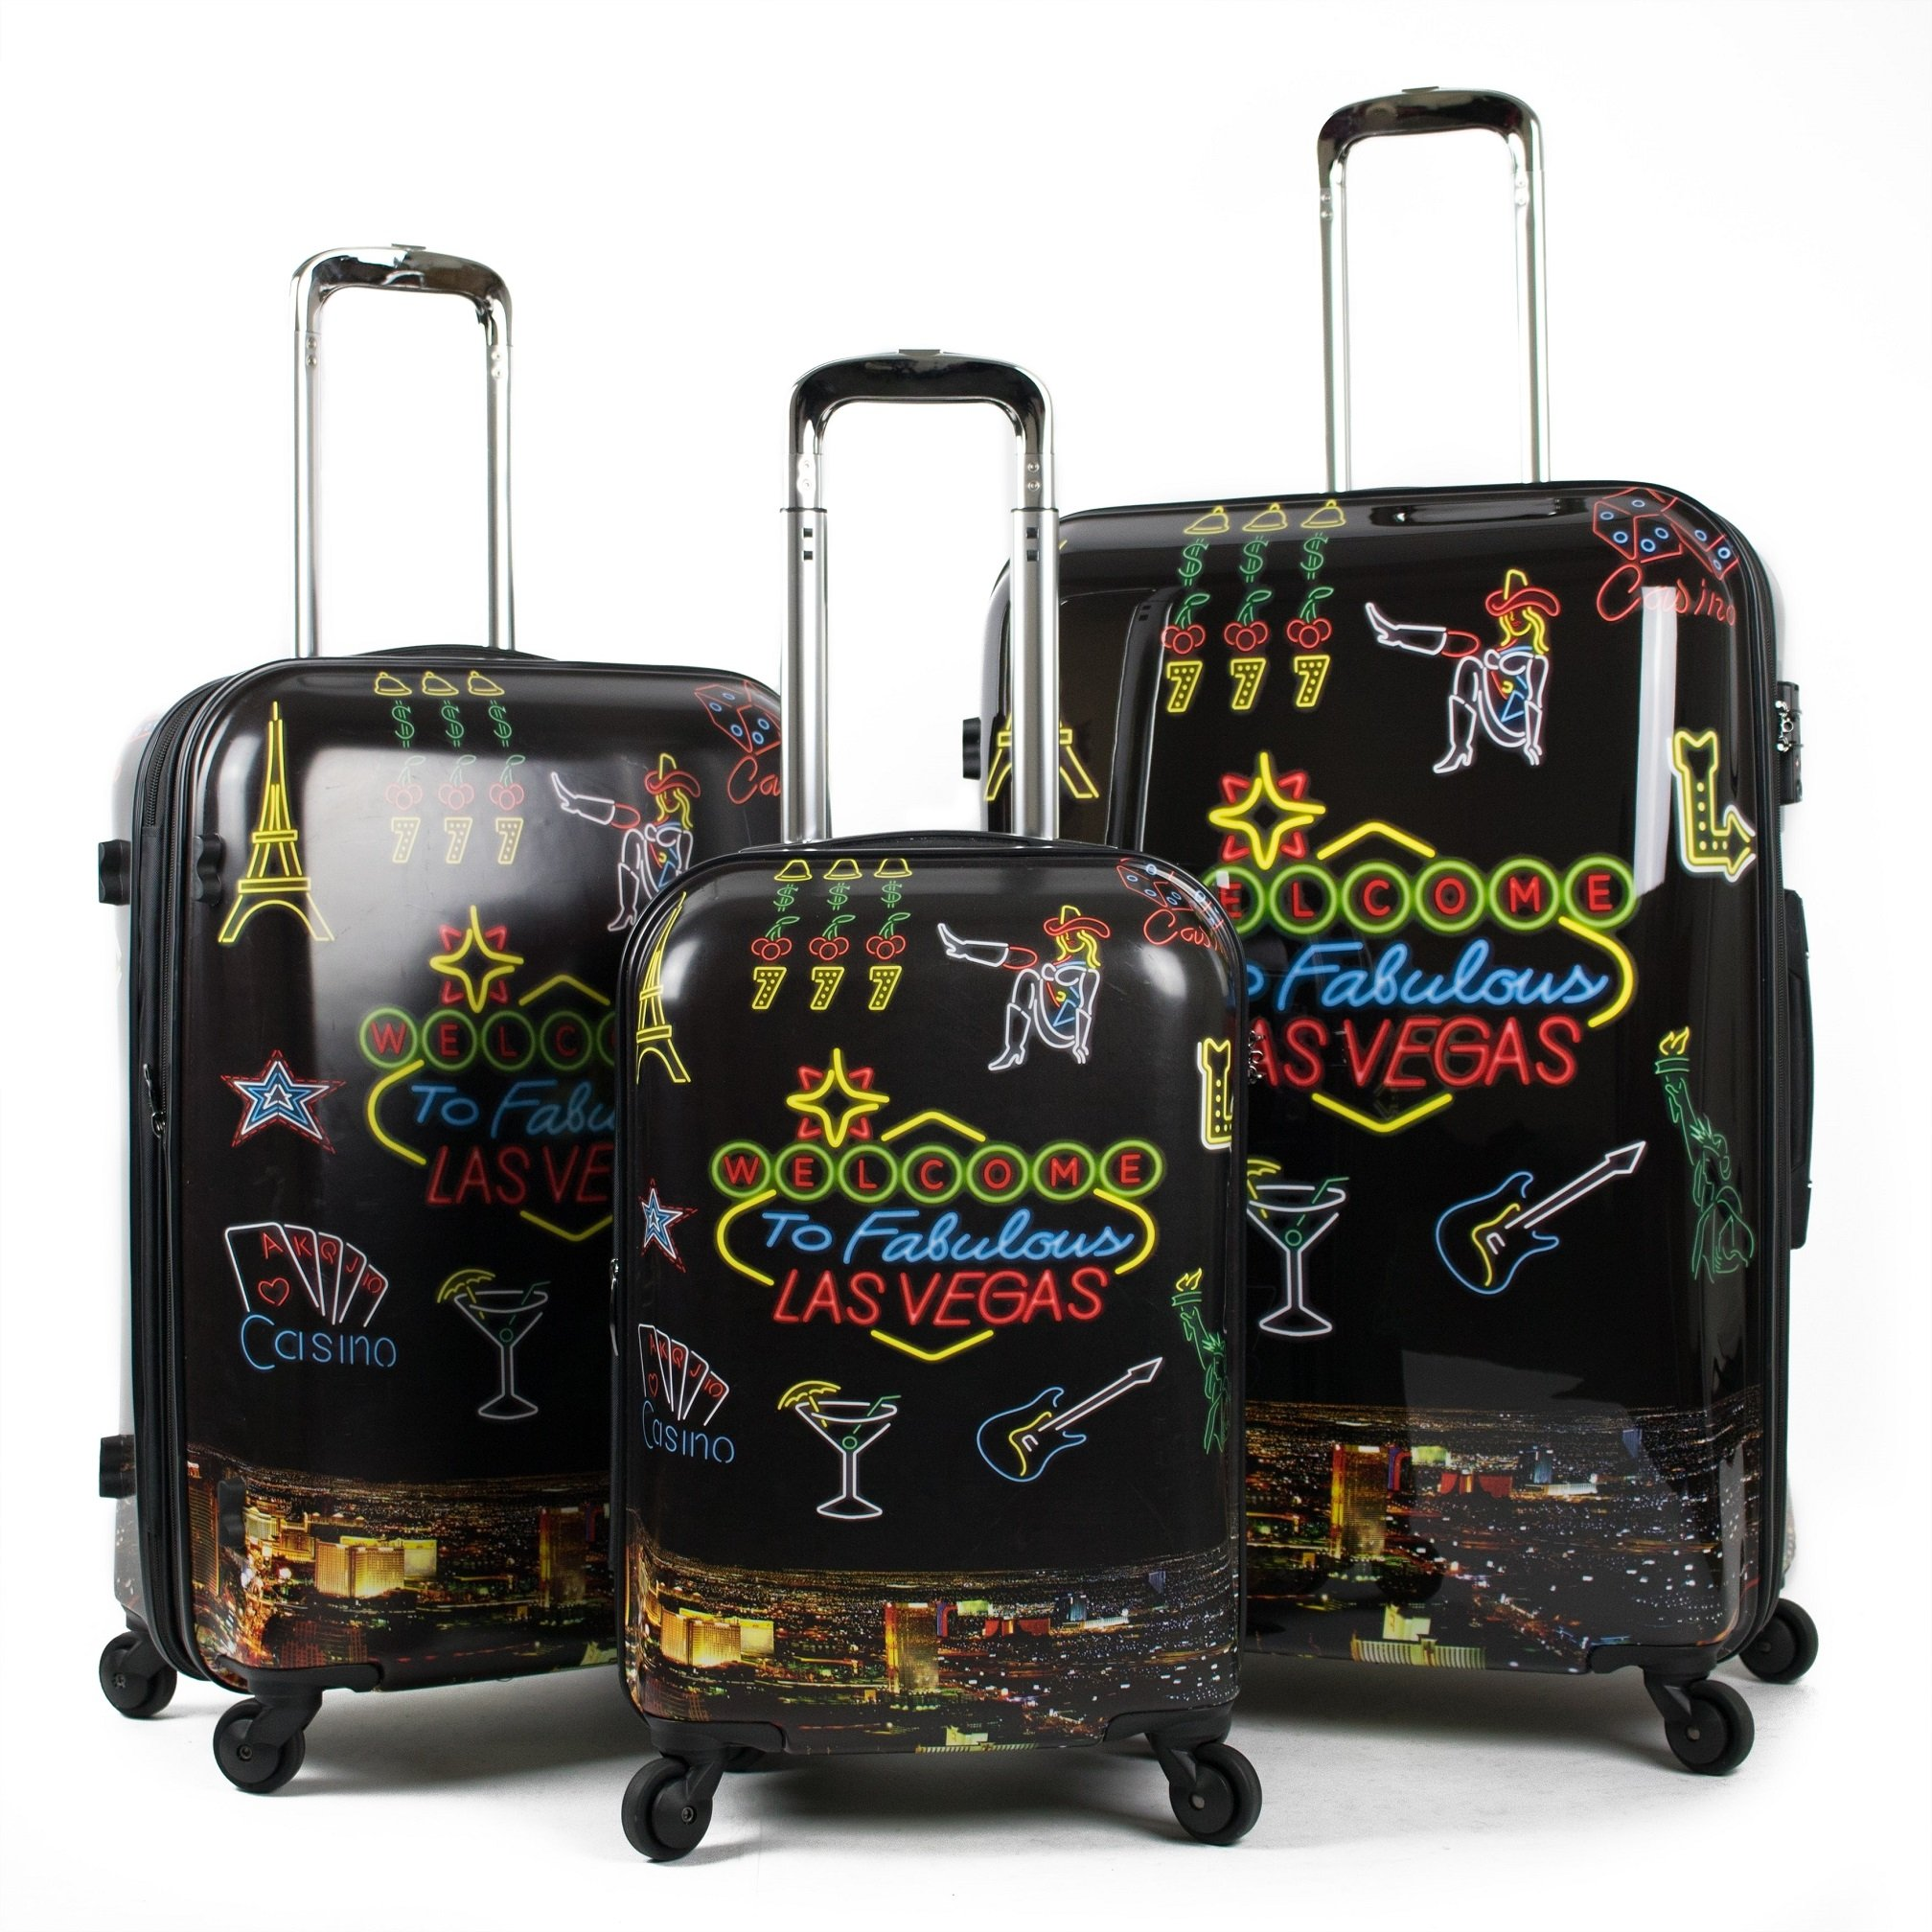 3 Piece Fabulous Las Vegas Motif Spinner Lightweight Carry On Luggage Set Suitcases, Wine Glass Lights Music Casino, Fashion, Hardside, Hardshell, Multi Compartment, Handle Travel Cases, Black, Yellow by S & E